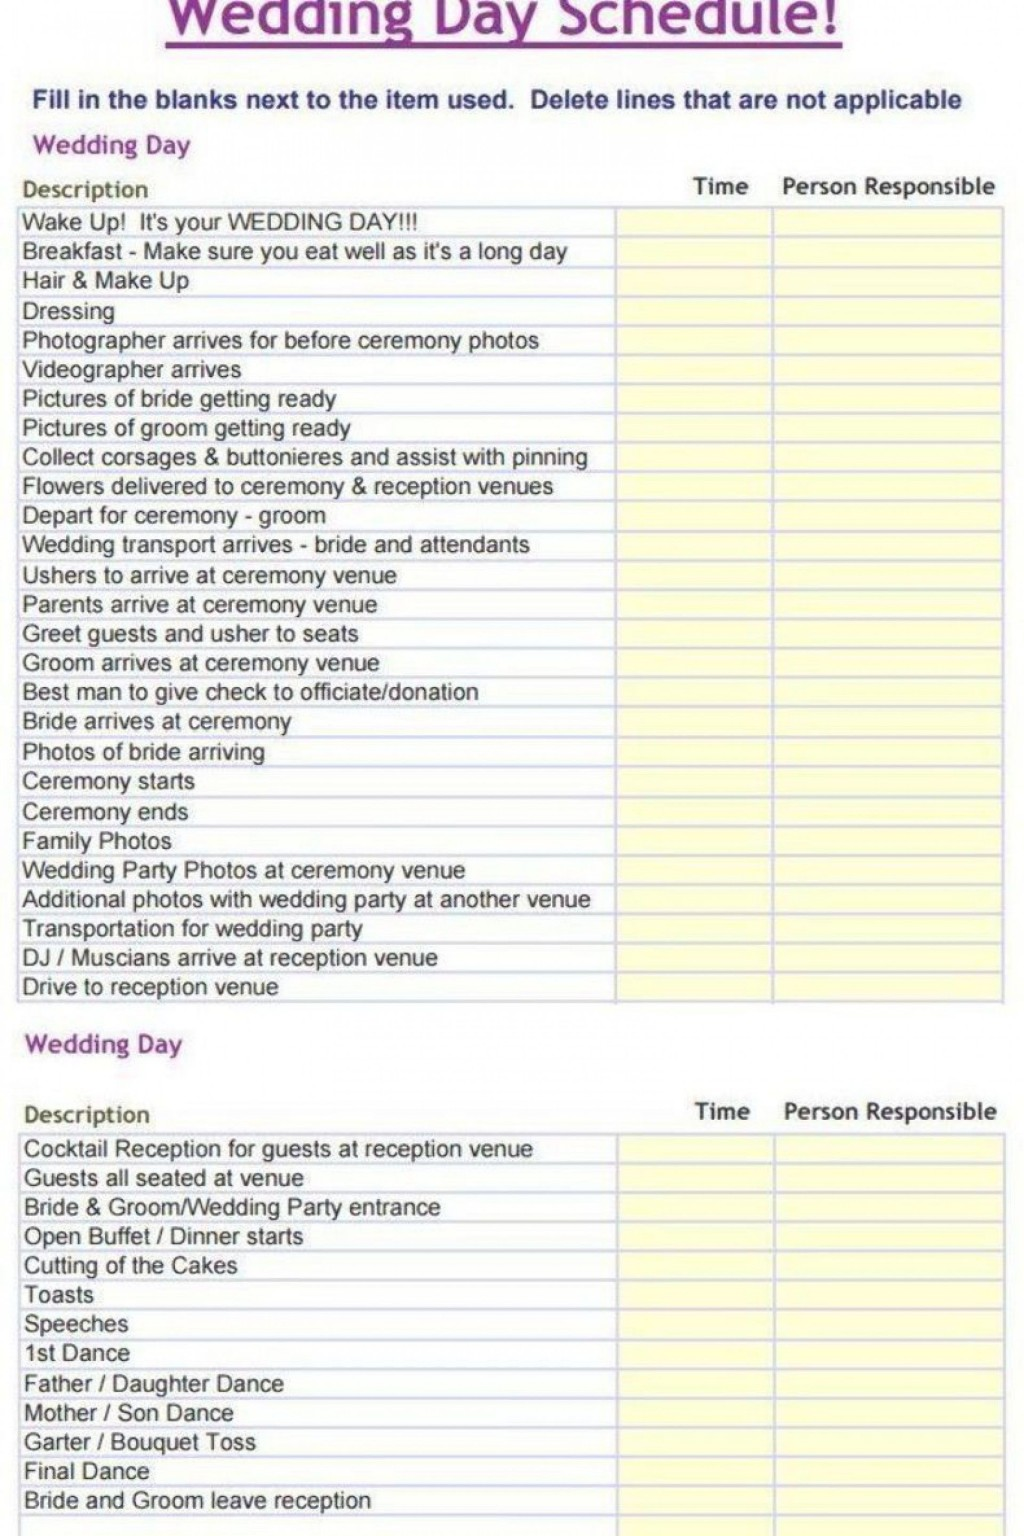 000 Sensational Wedding Day Itinerary Template High Def  Reception Dj Indian Timeline For Bridal PartyLarge